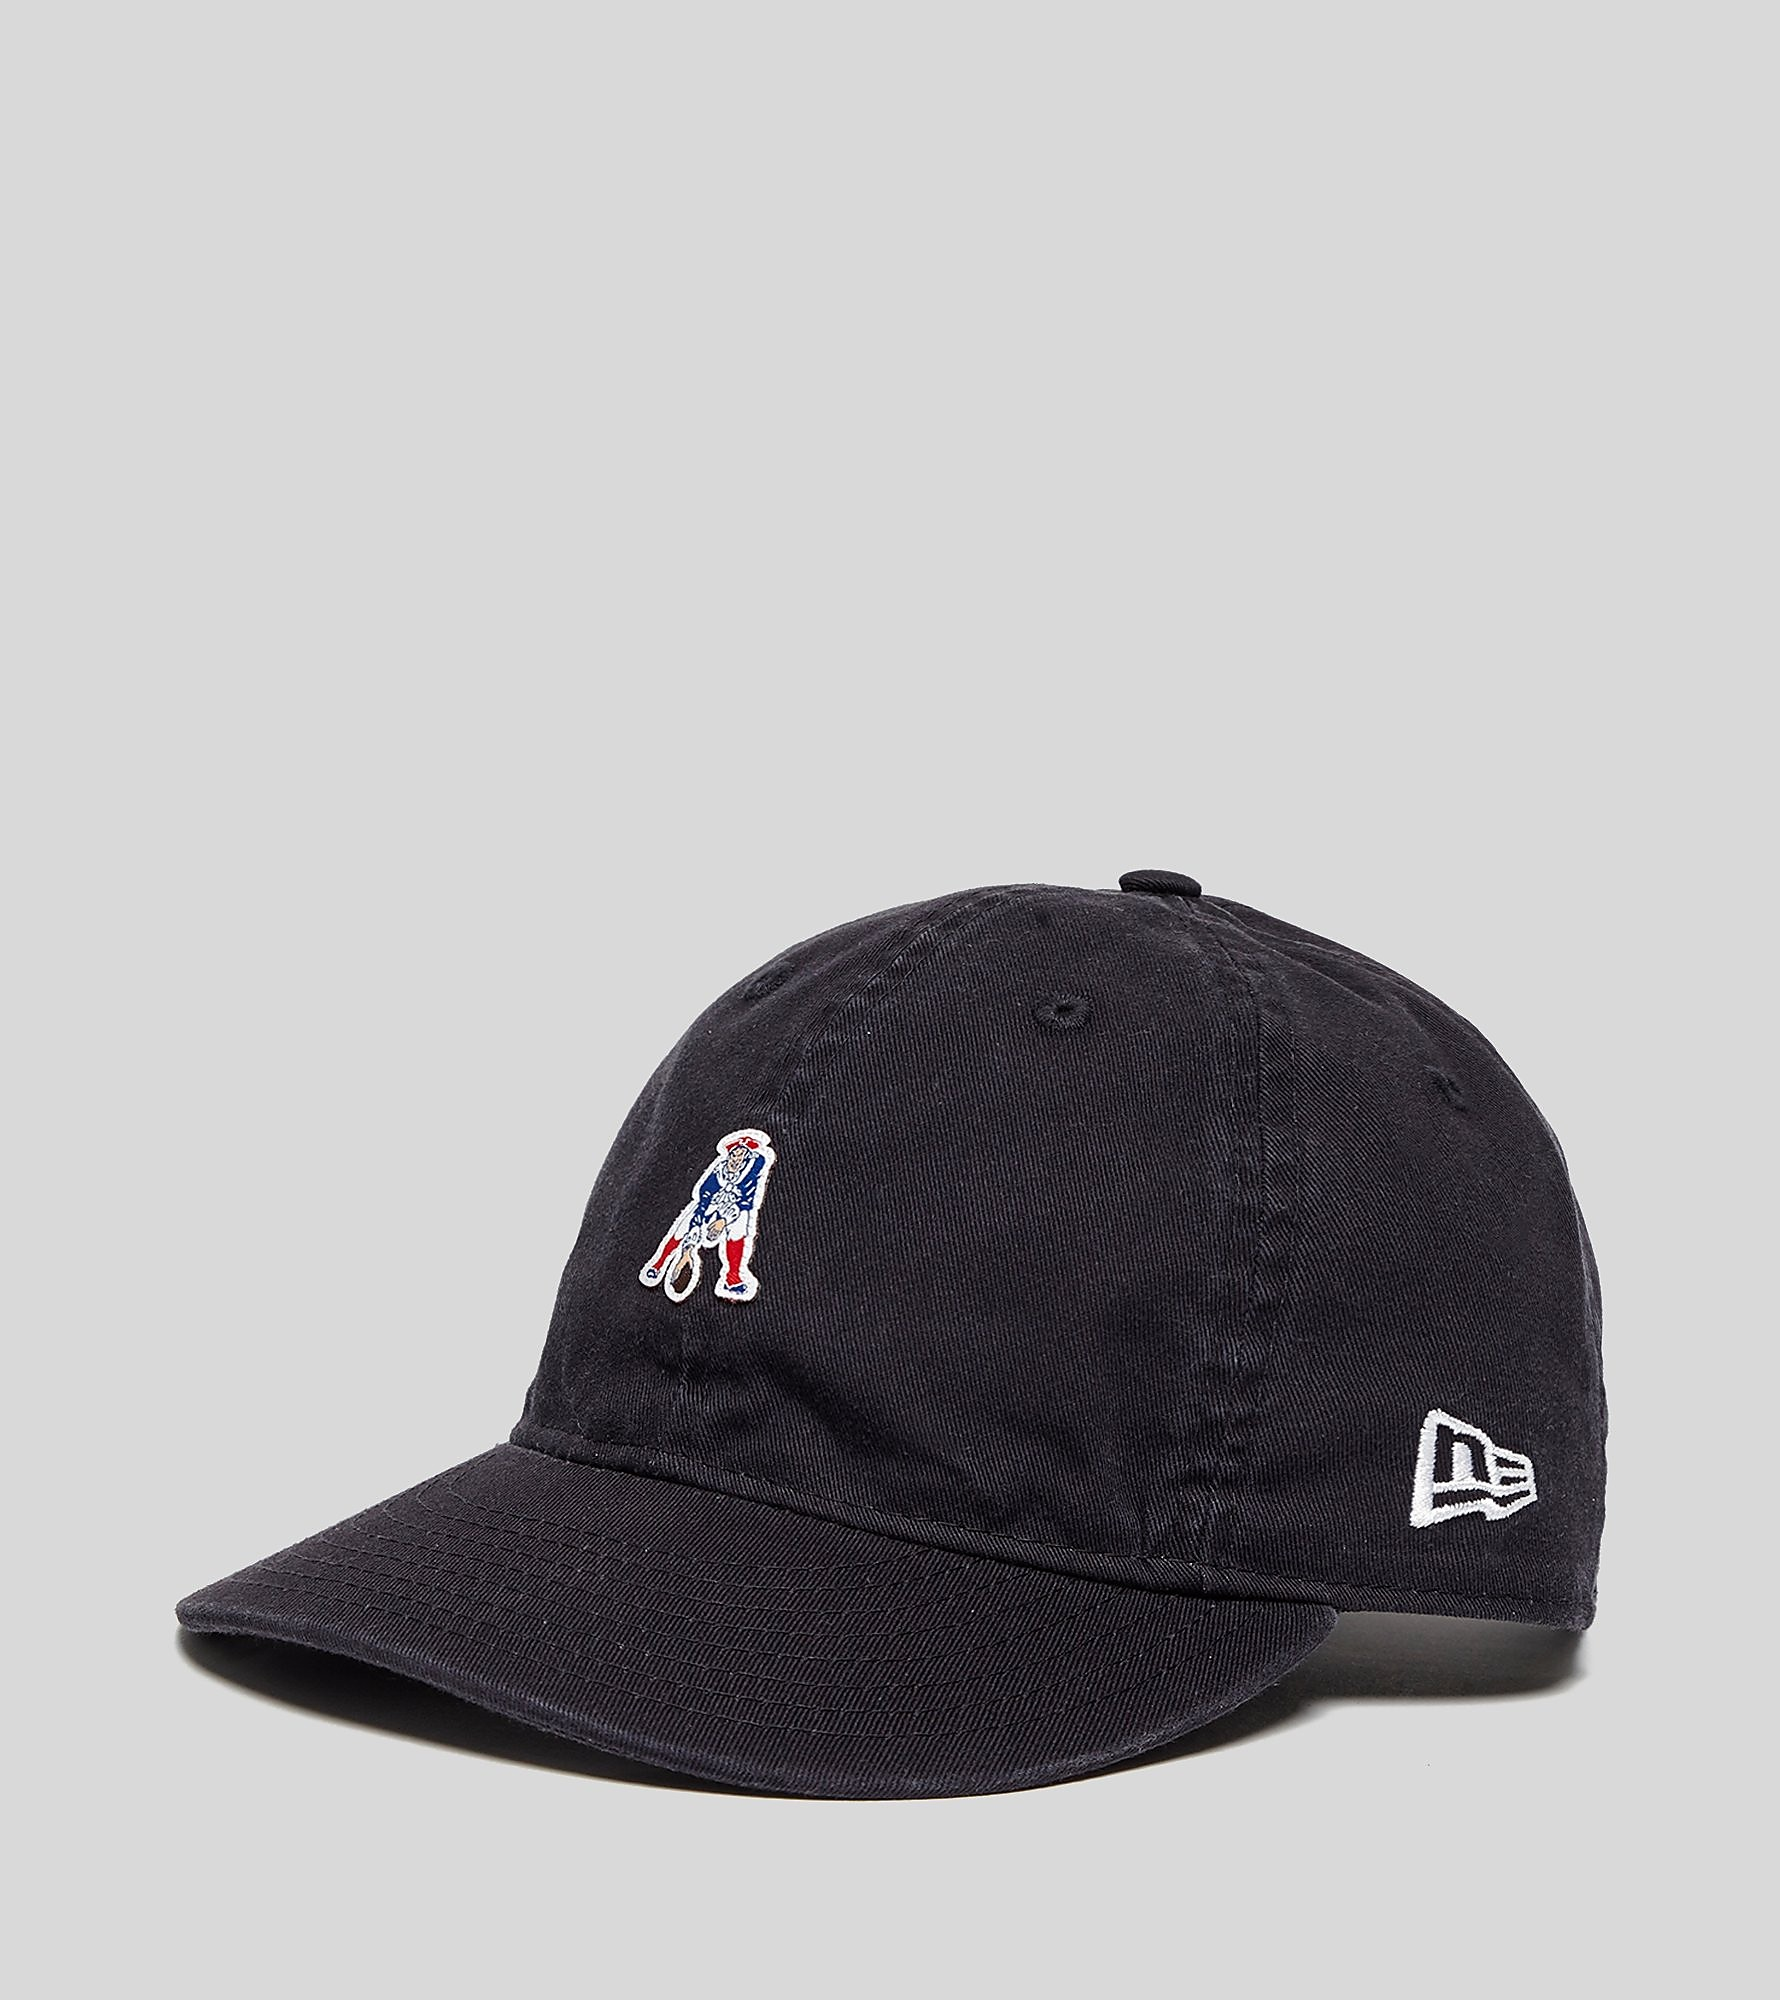 New Era 9FIFTY Low Profile Patriots Cap